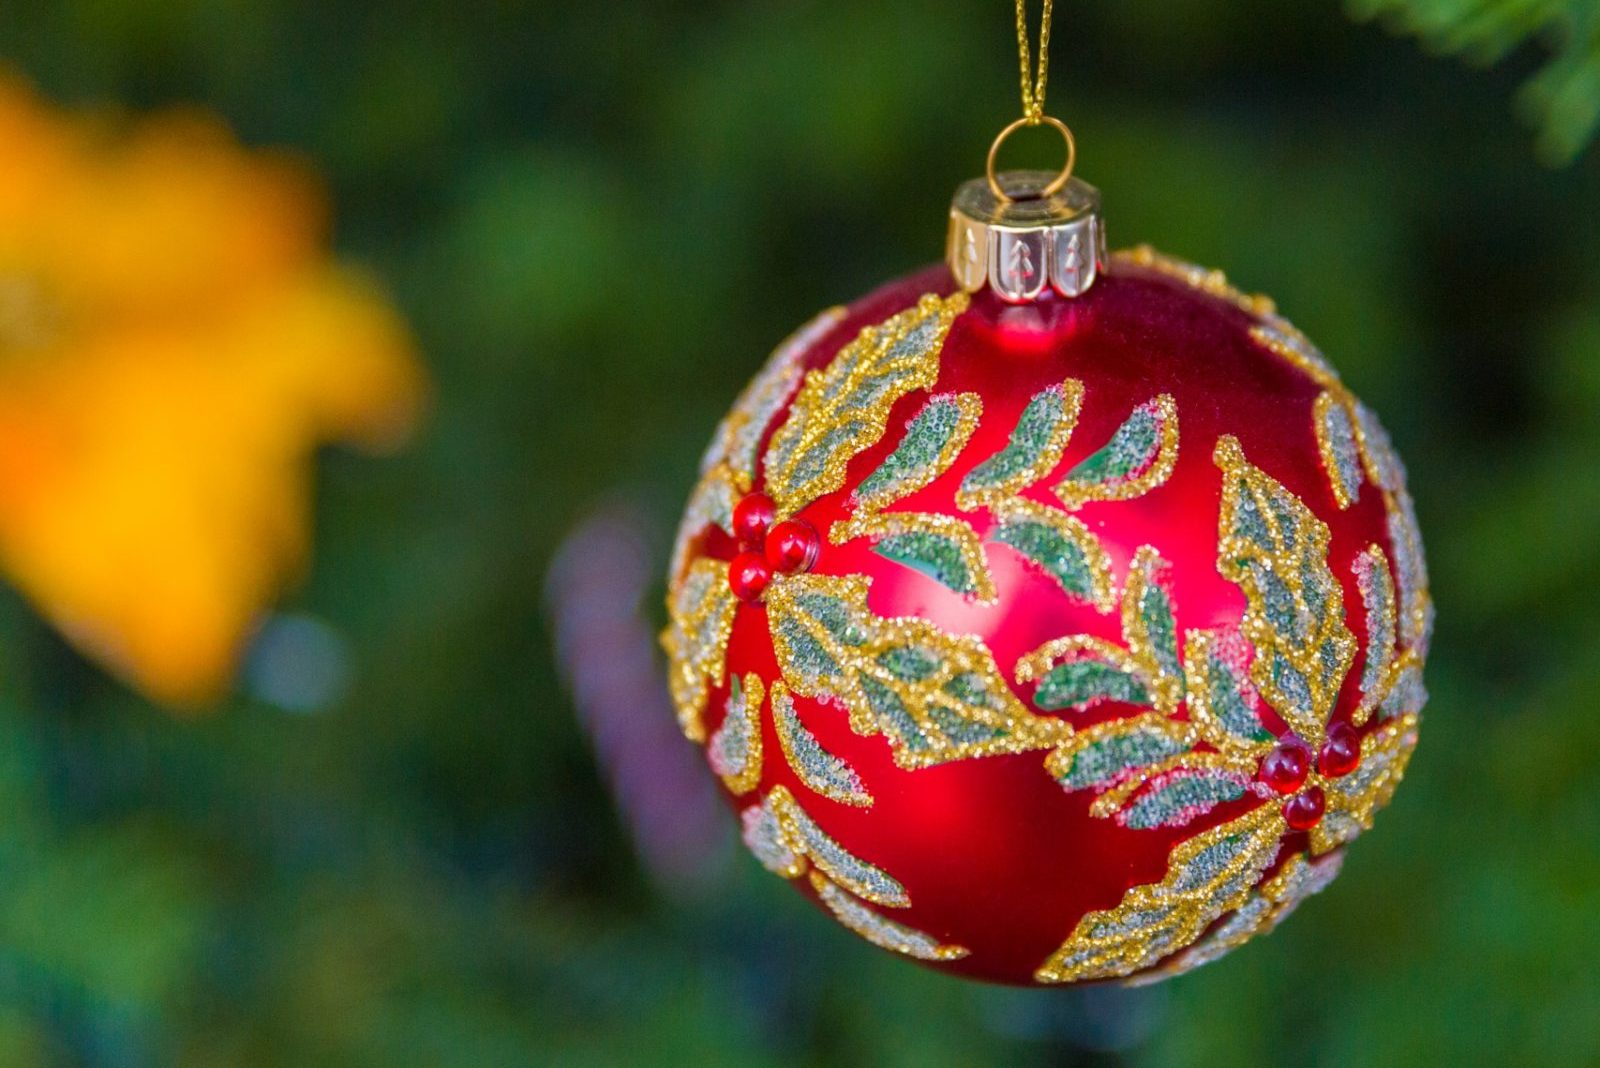 Christmas Decorations.The Health And Safety Of Christmas Decorations Hr24